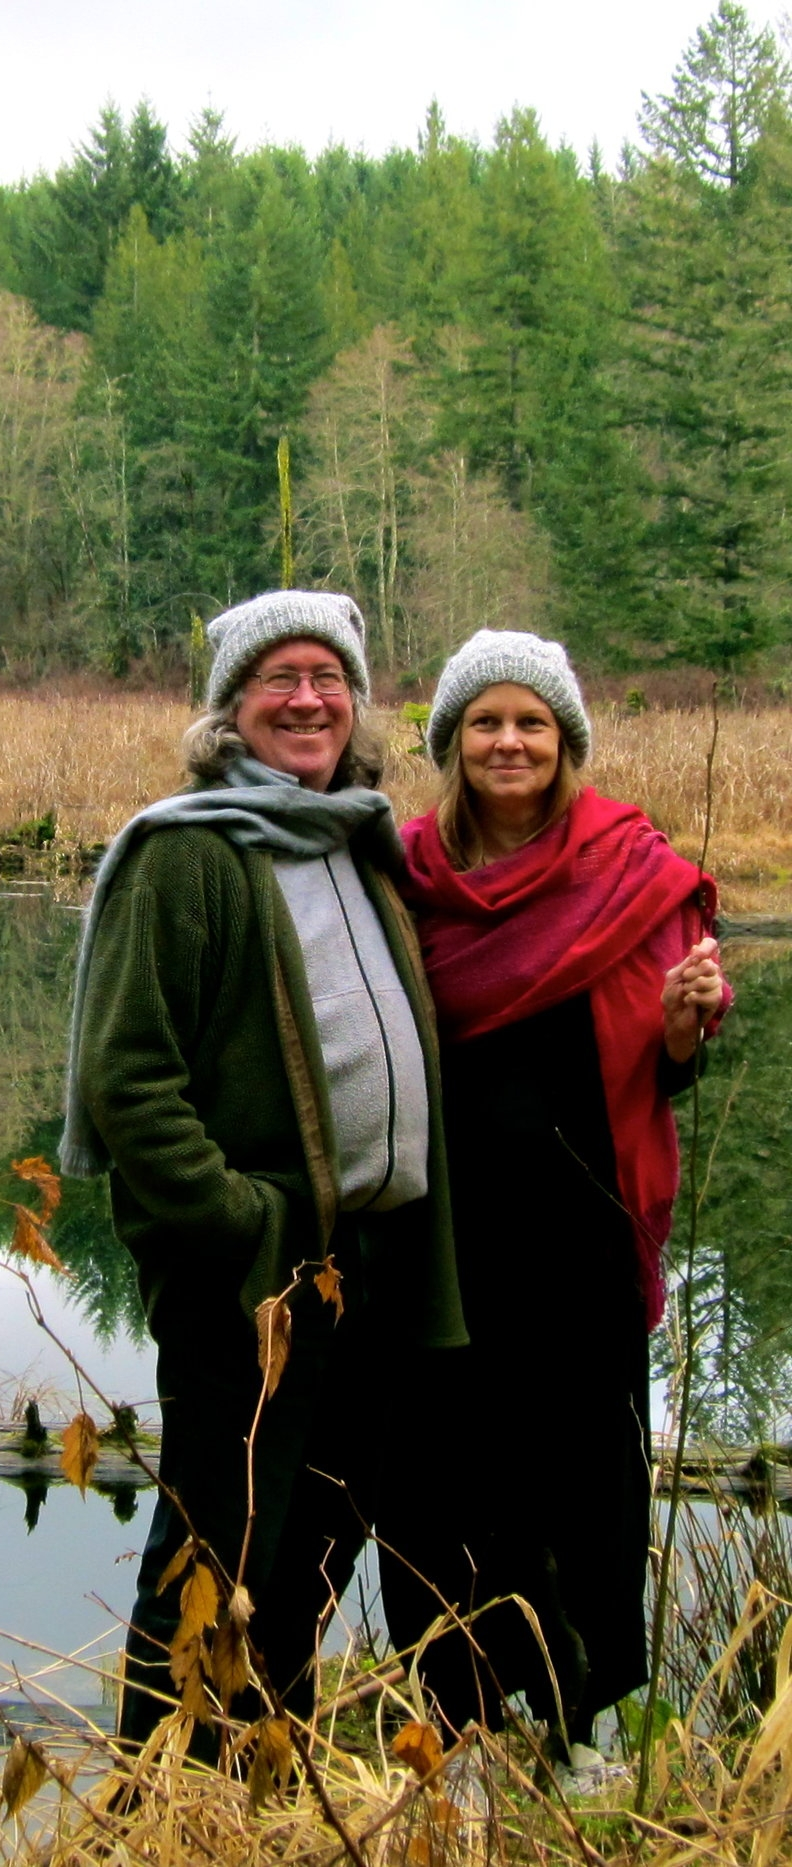 Sandie & Paul, co-owner and directors of Mosswood Hollow